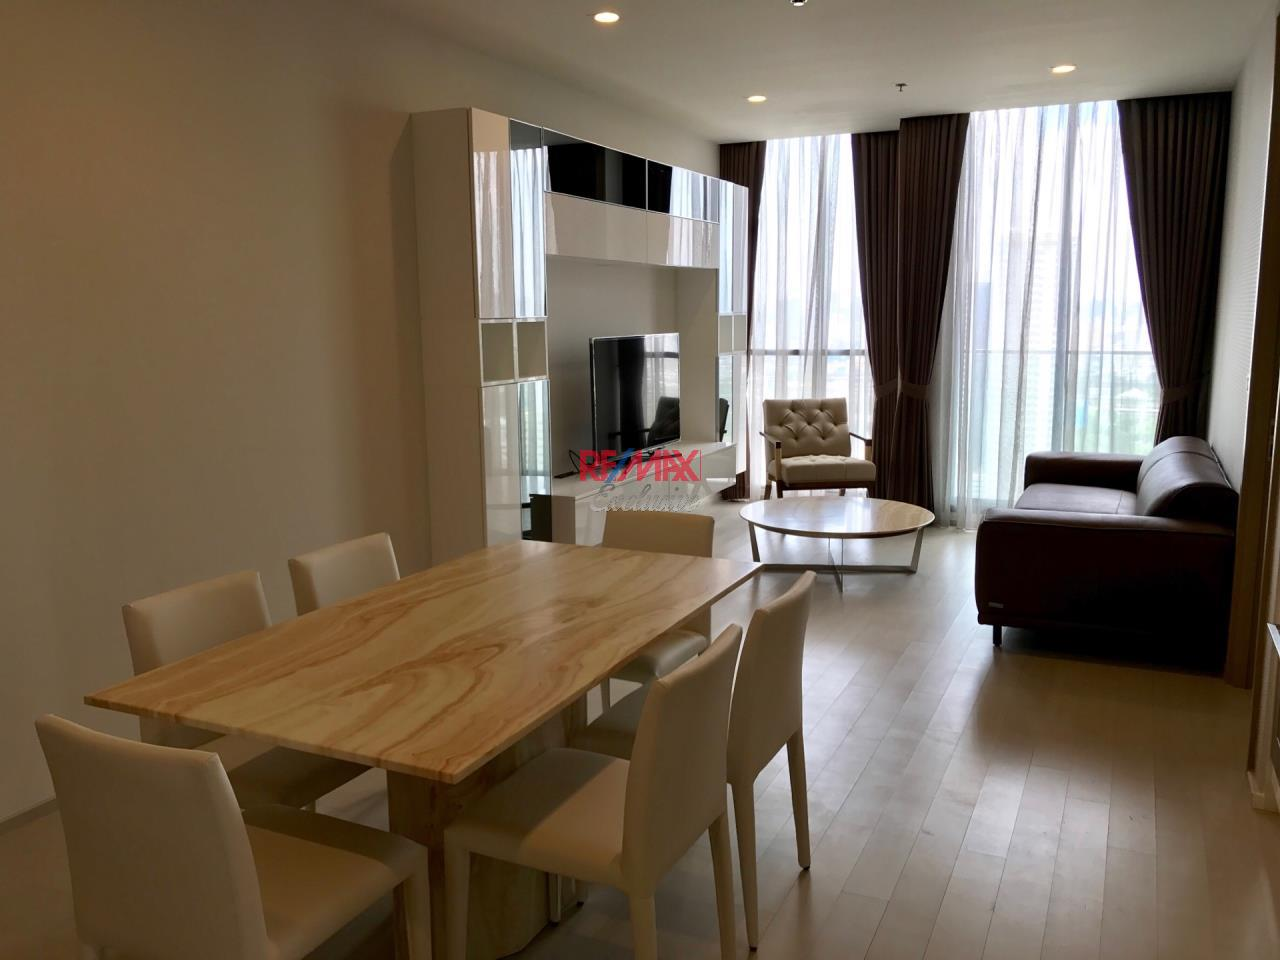 RE/MAX Exclusive Agency's Noble Ploenchit 2 Bedrooms, 2 Bathrooms, 85 Sqm., For Rent and Sale!! 1